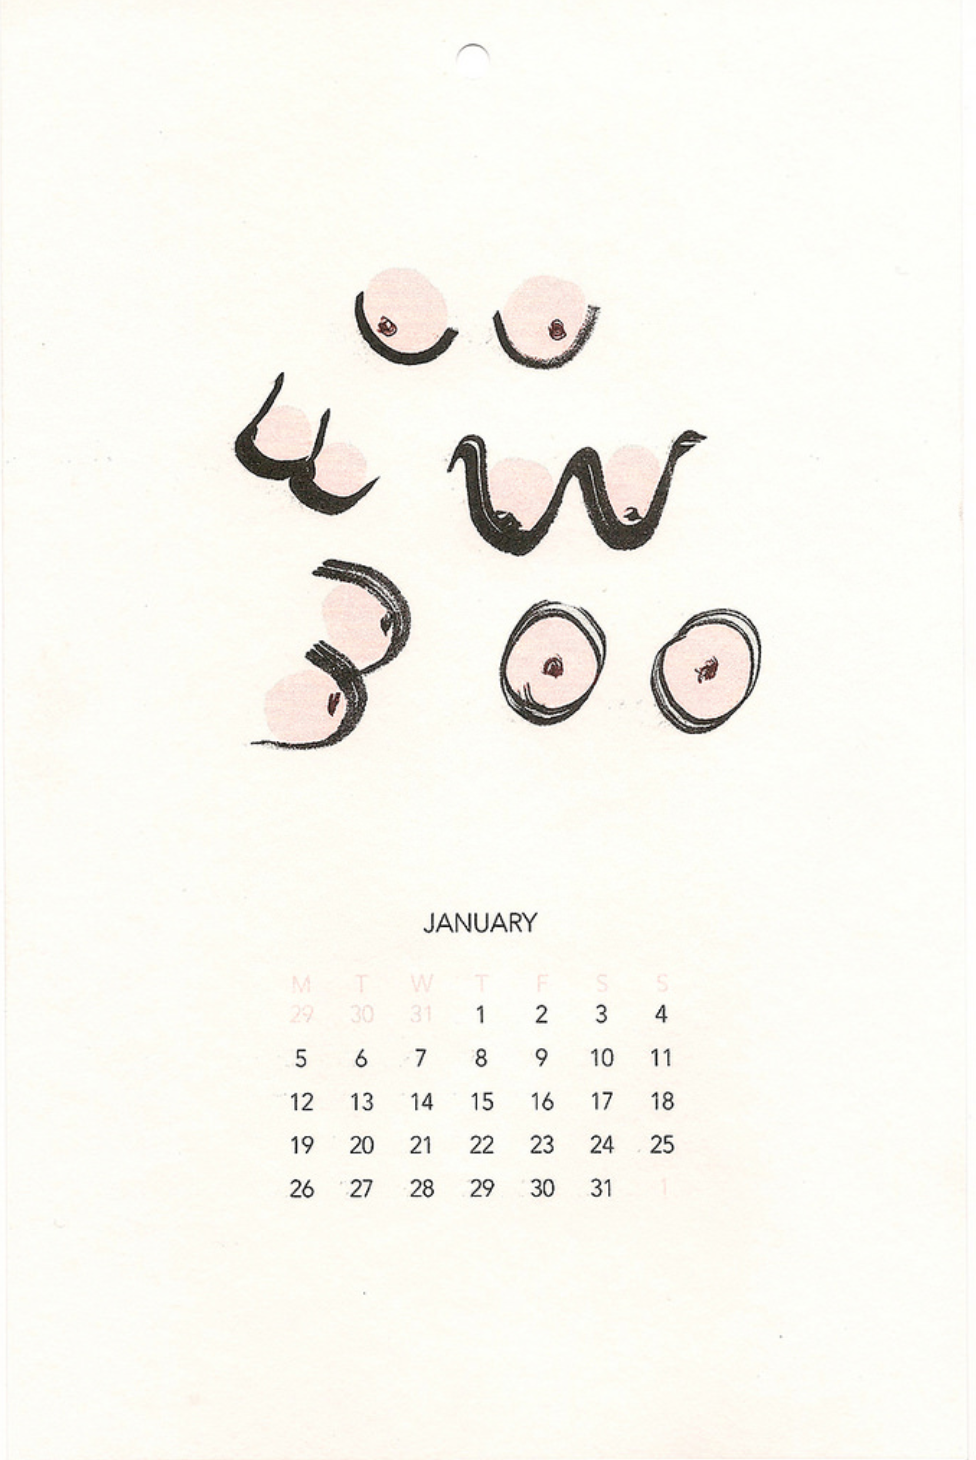 Illustrated Nude Calendar - Stijlmeisje